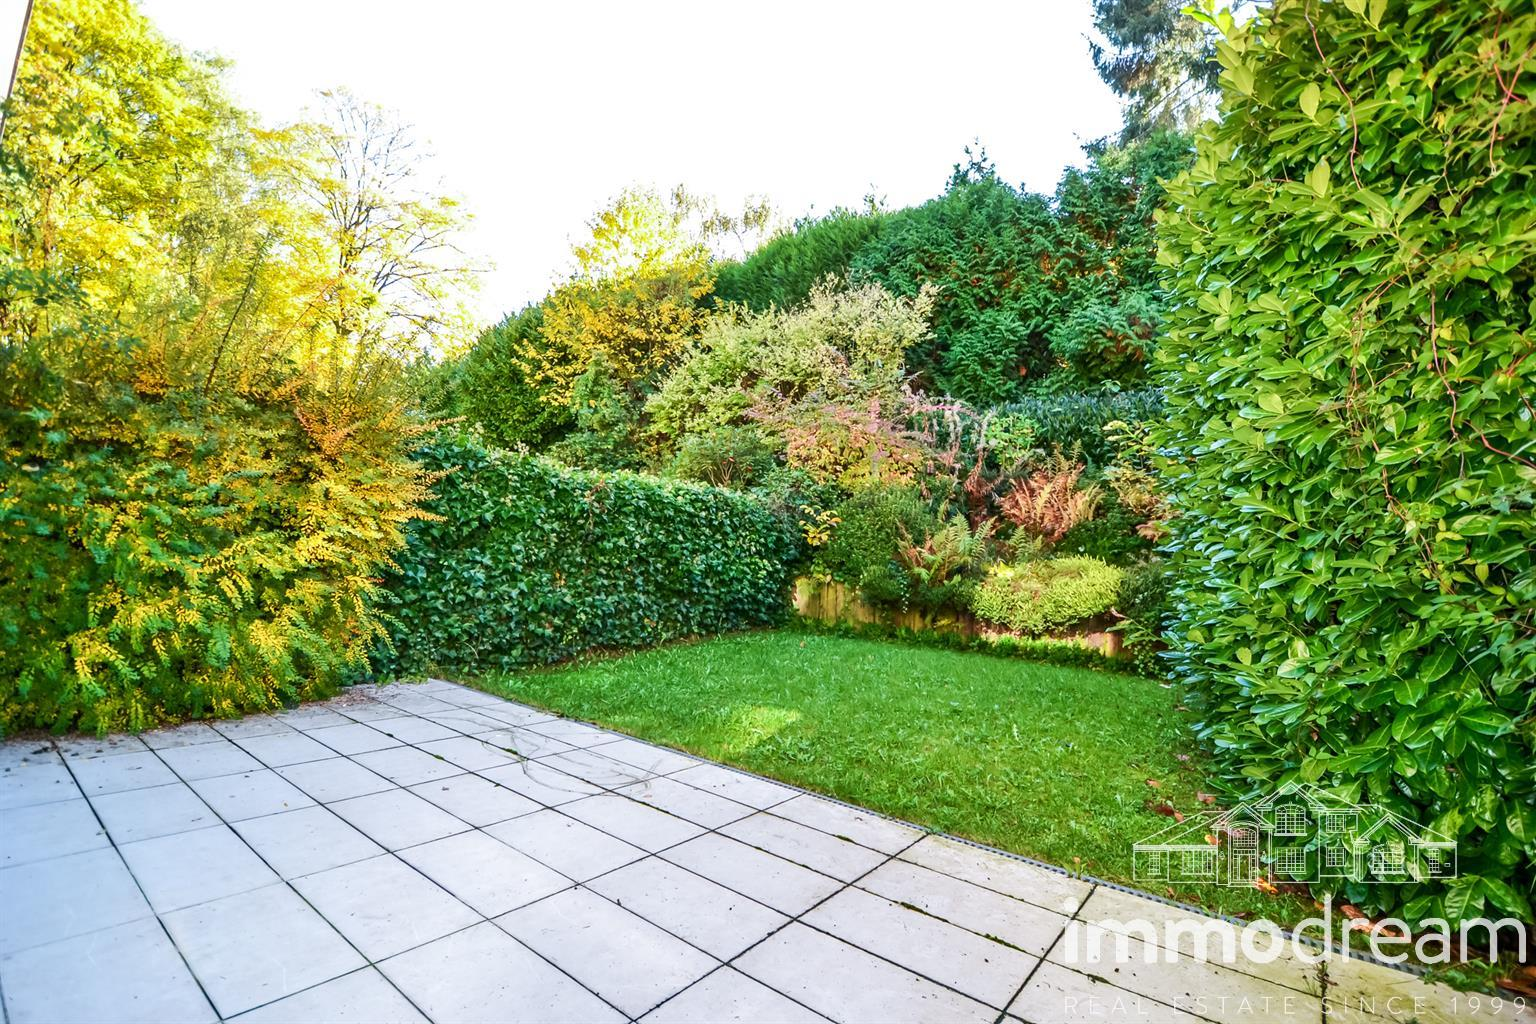 Huis - Uccle - #4042739-3